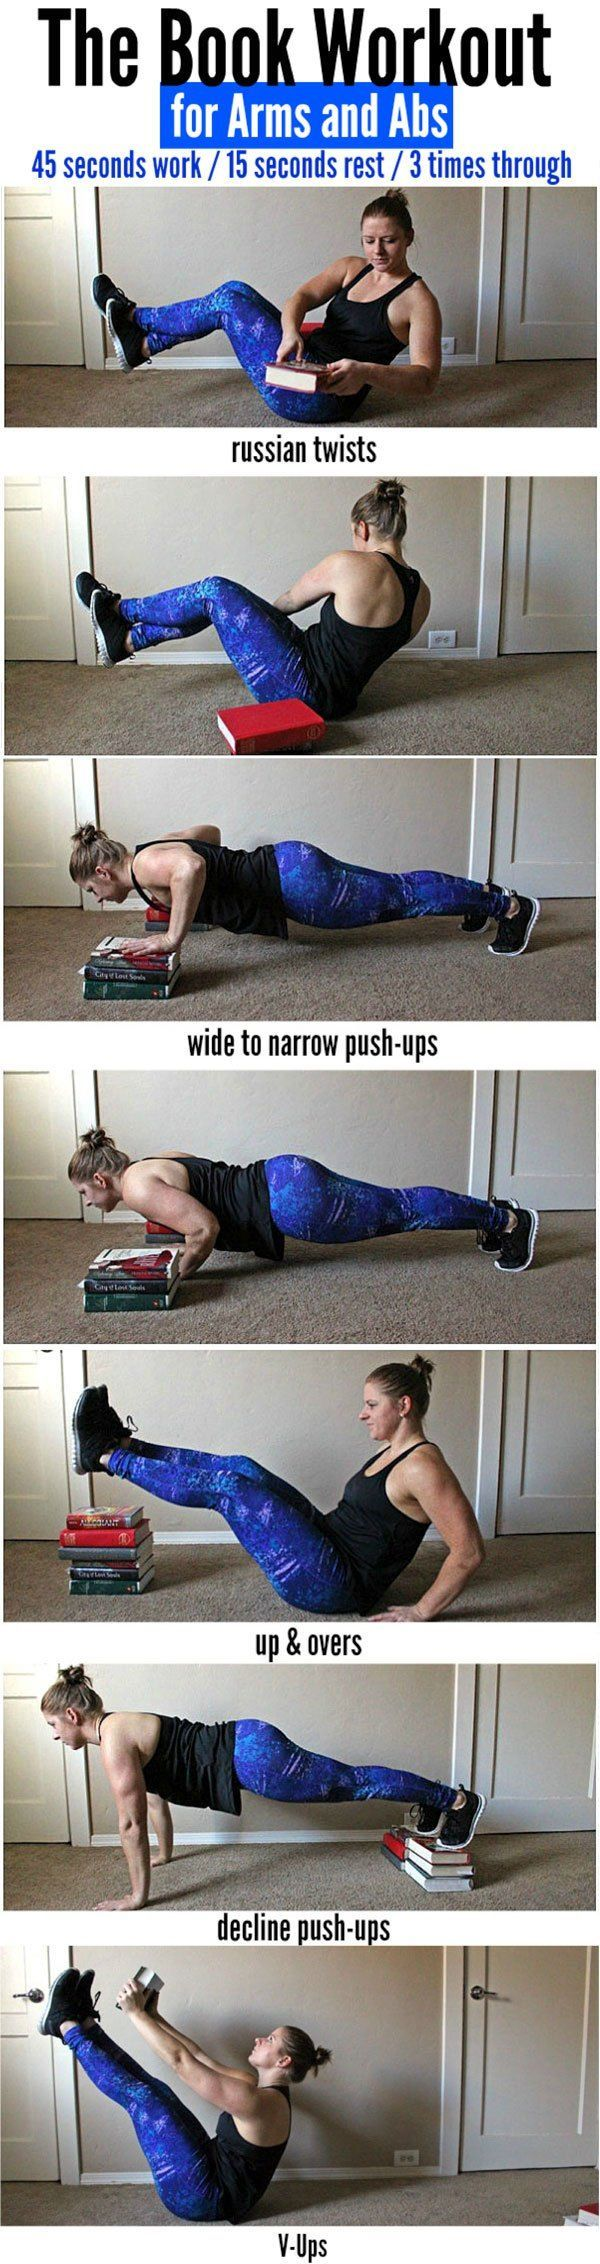 Arms & Abs Workout Using Books